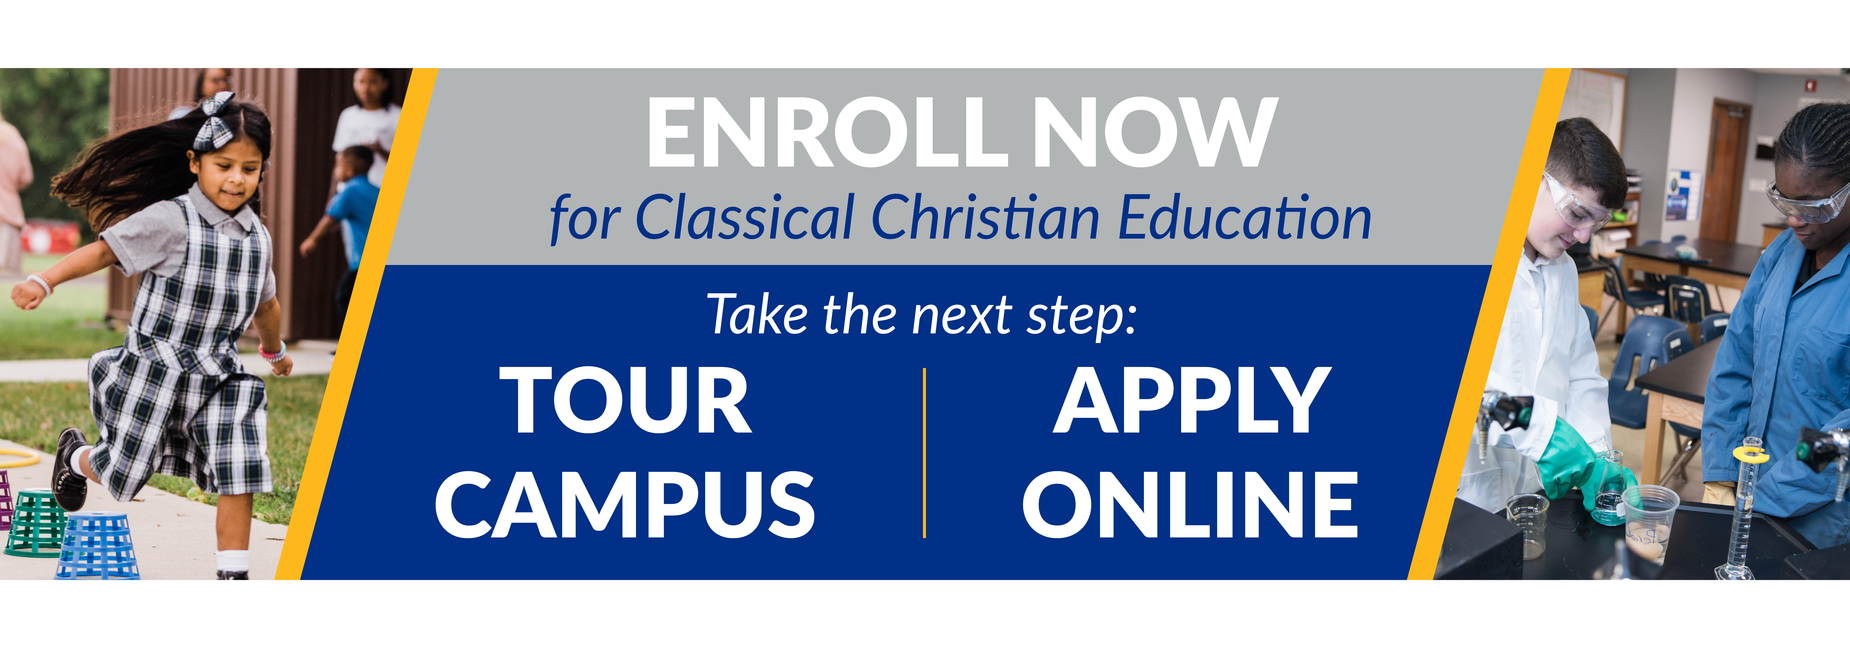 Tour Campus or Apply Online